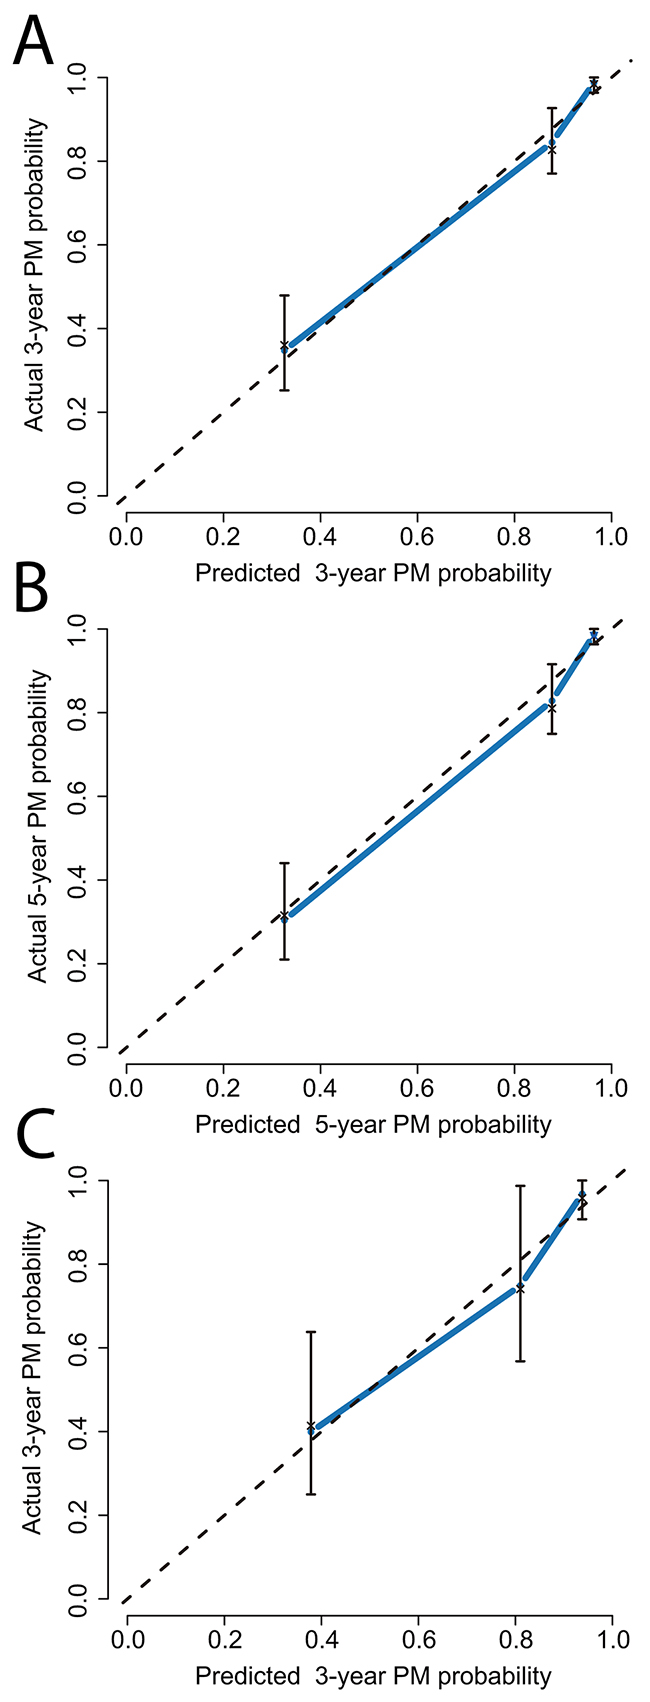 The calibration curve analysis for PM prediction.